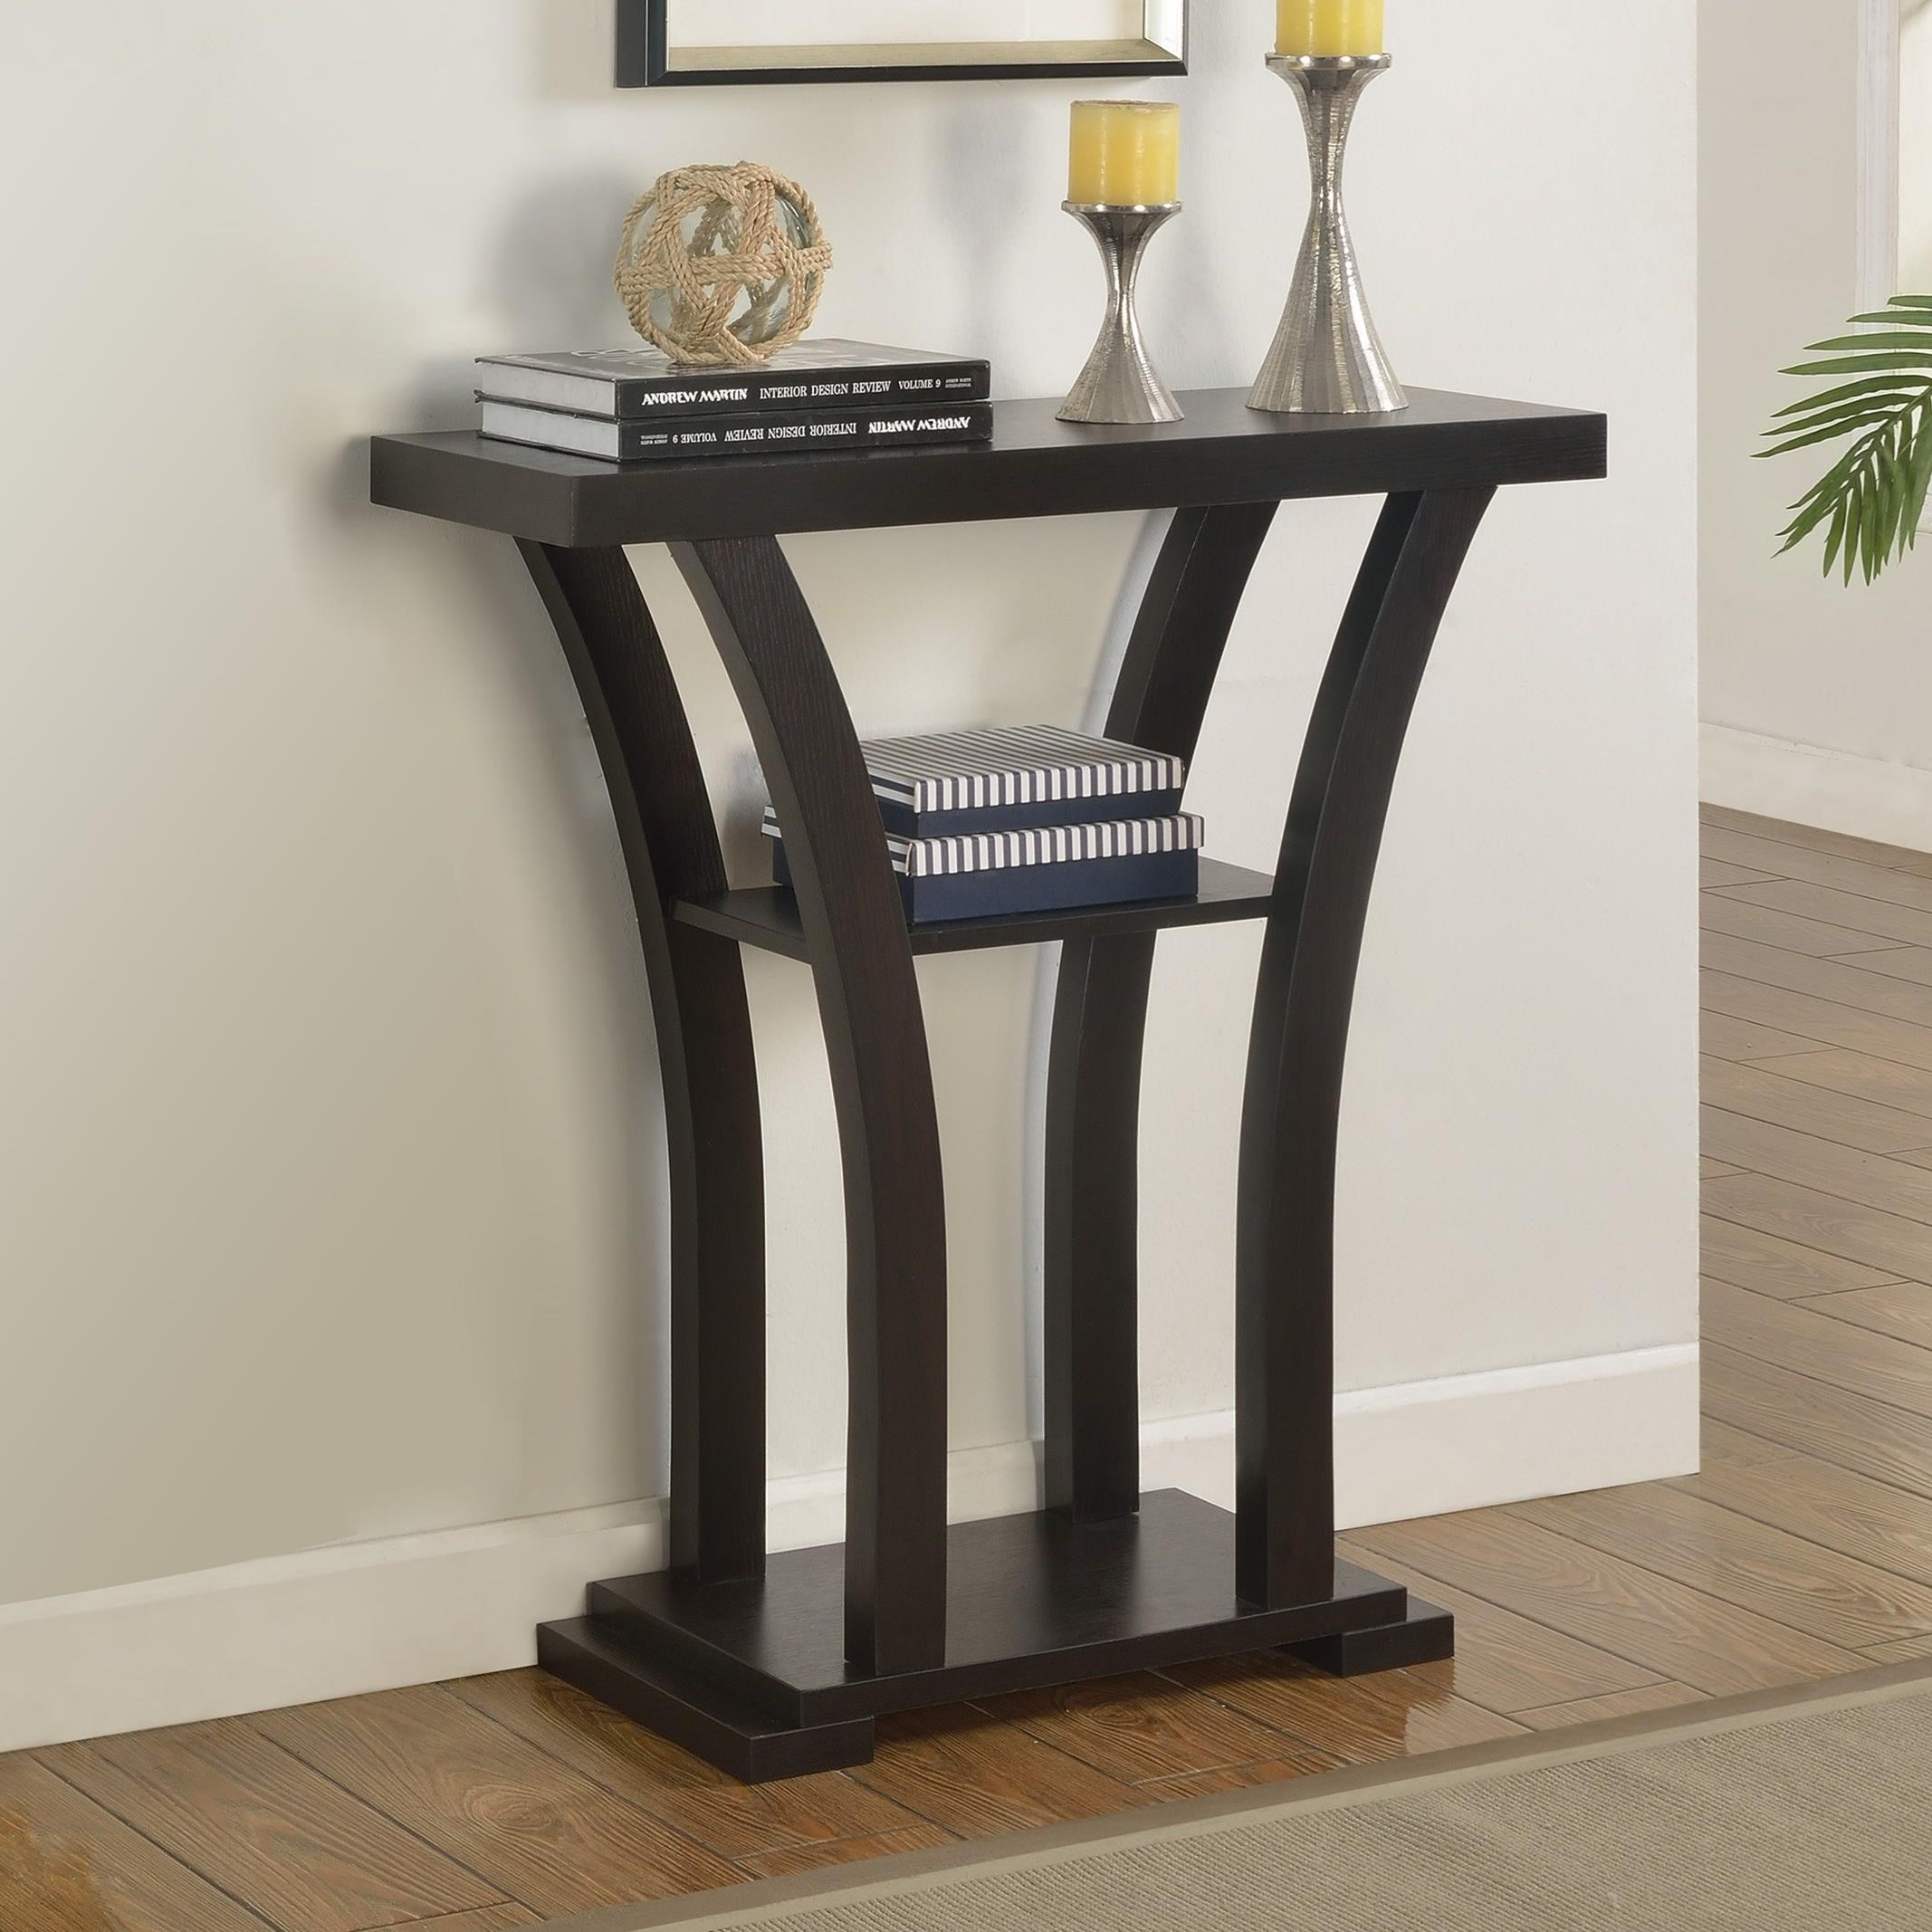 Draper Console Table  by Crown Mark at Darvin Furniture